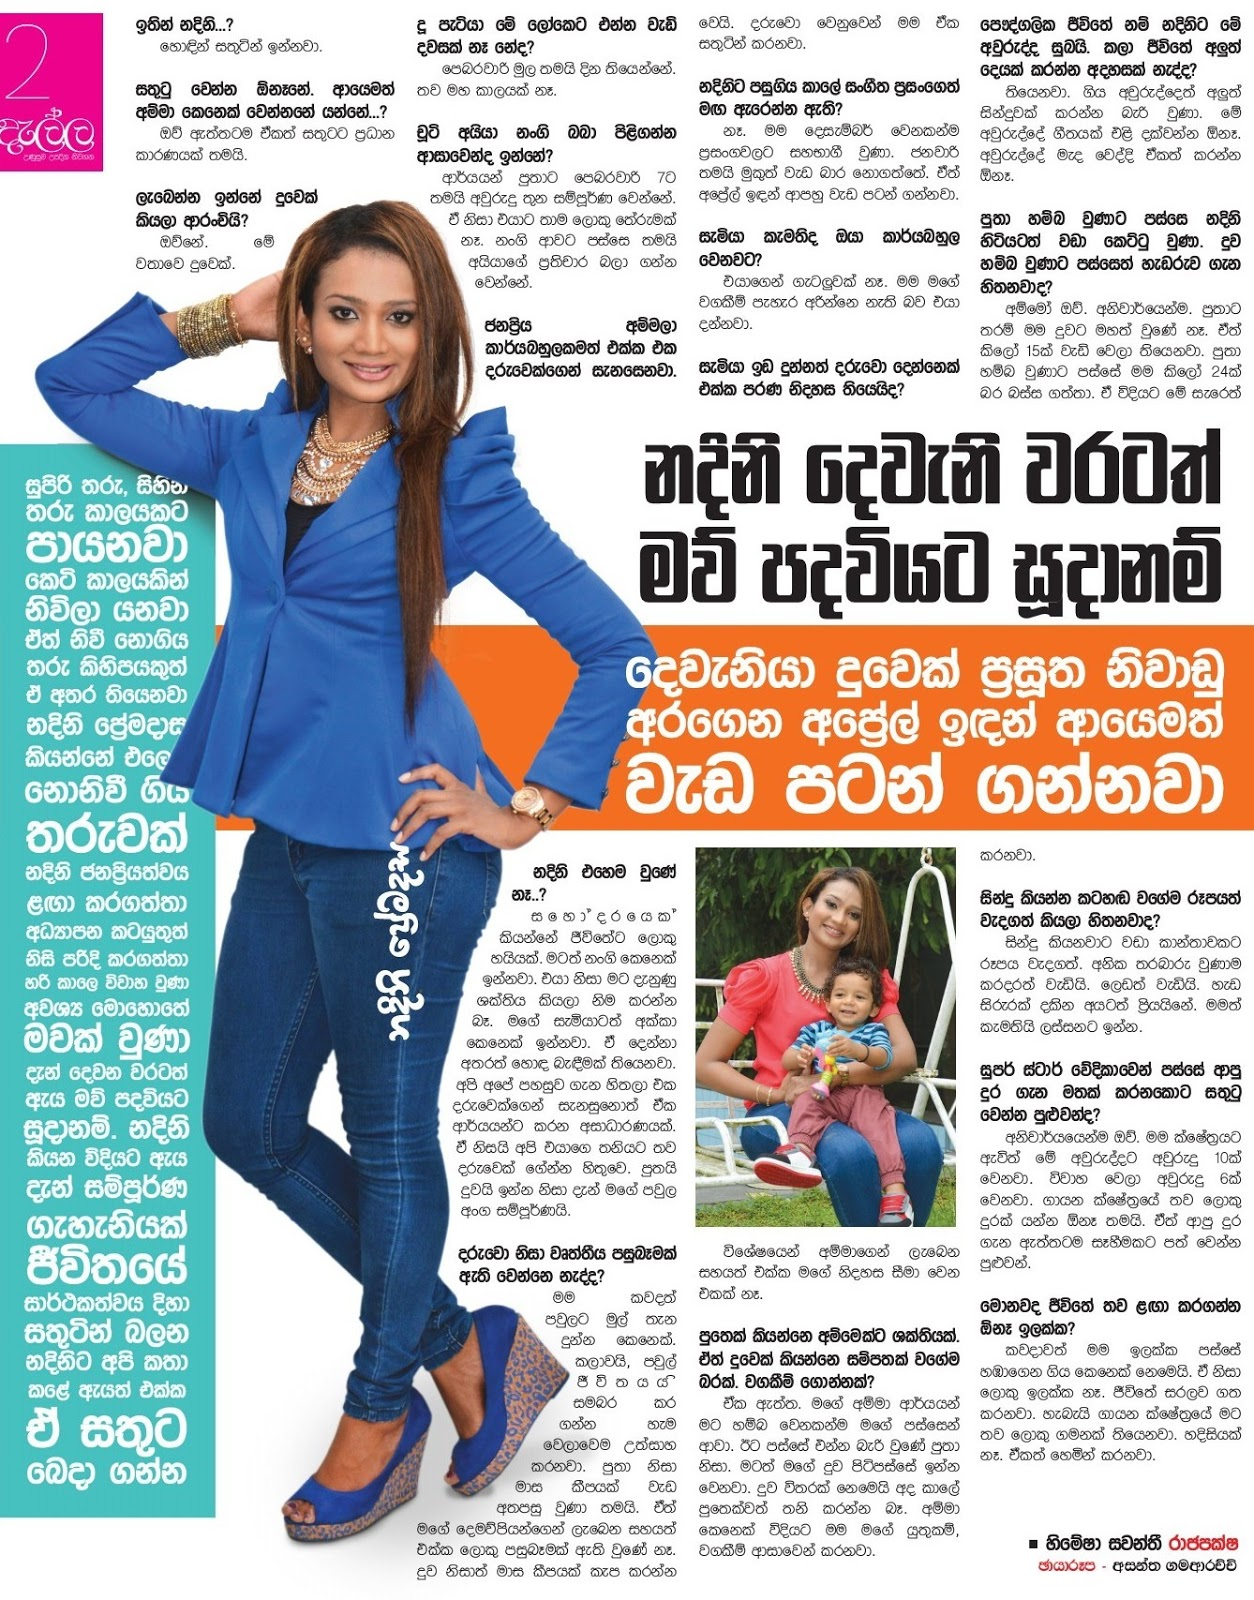 Gossip Chat With Nadini Premadasa | Gossip Lanka News